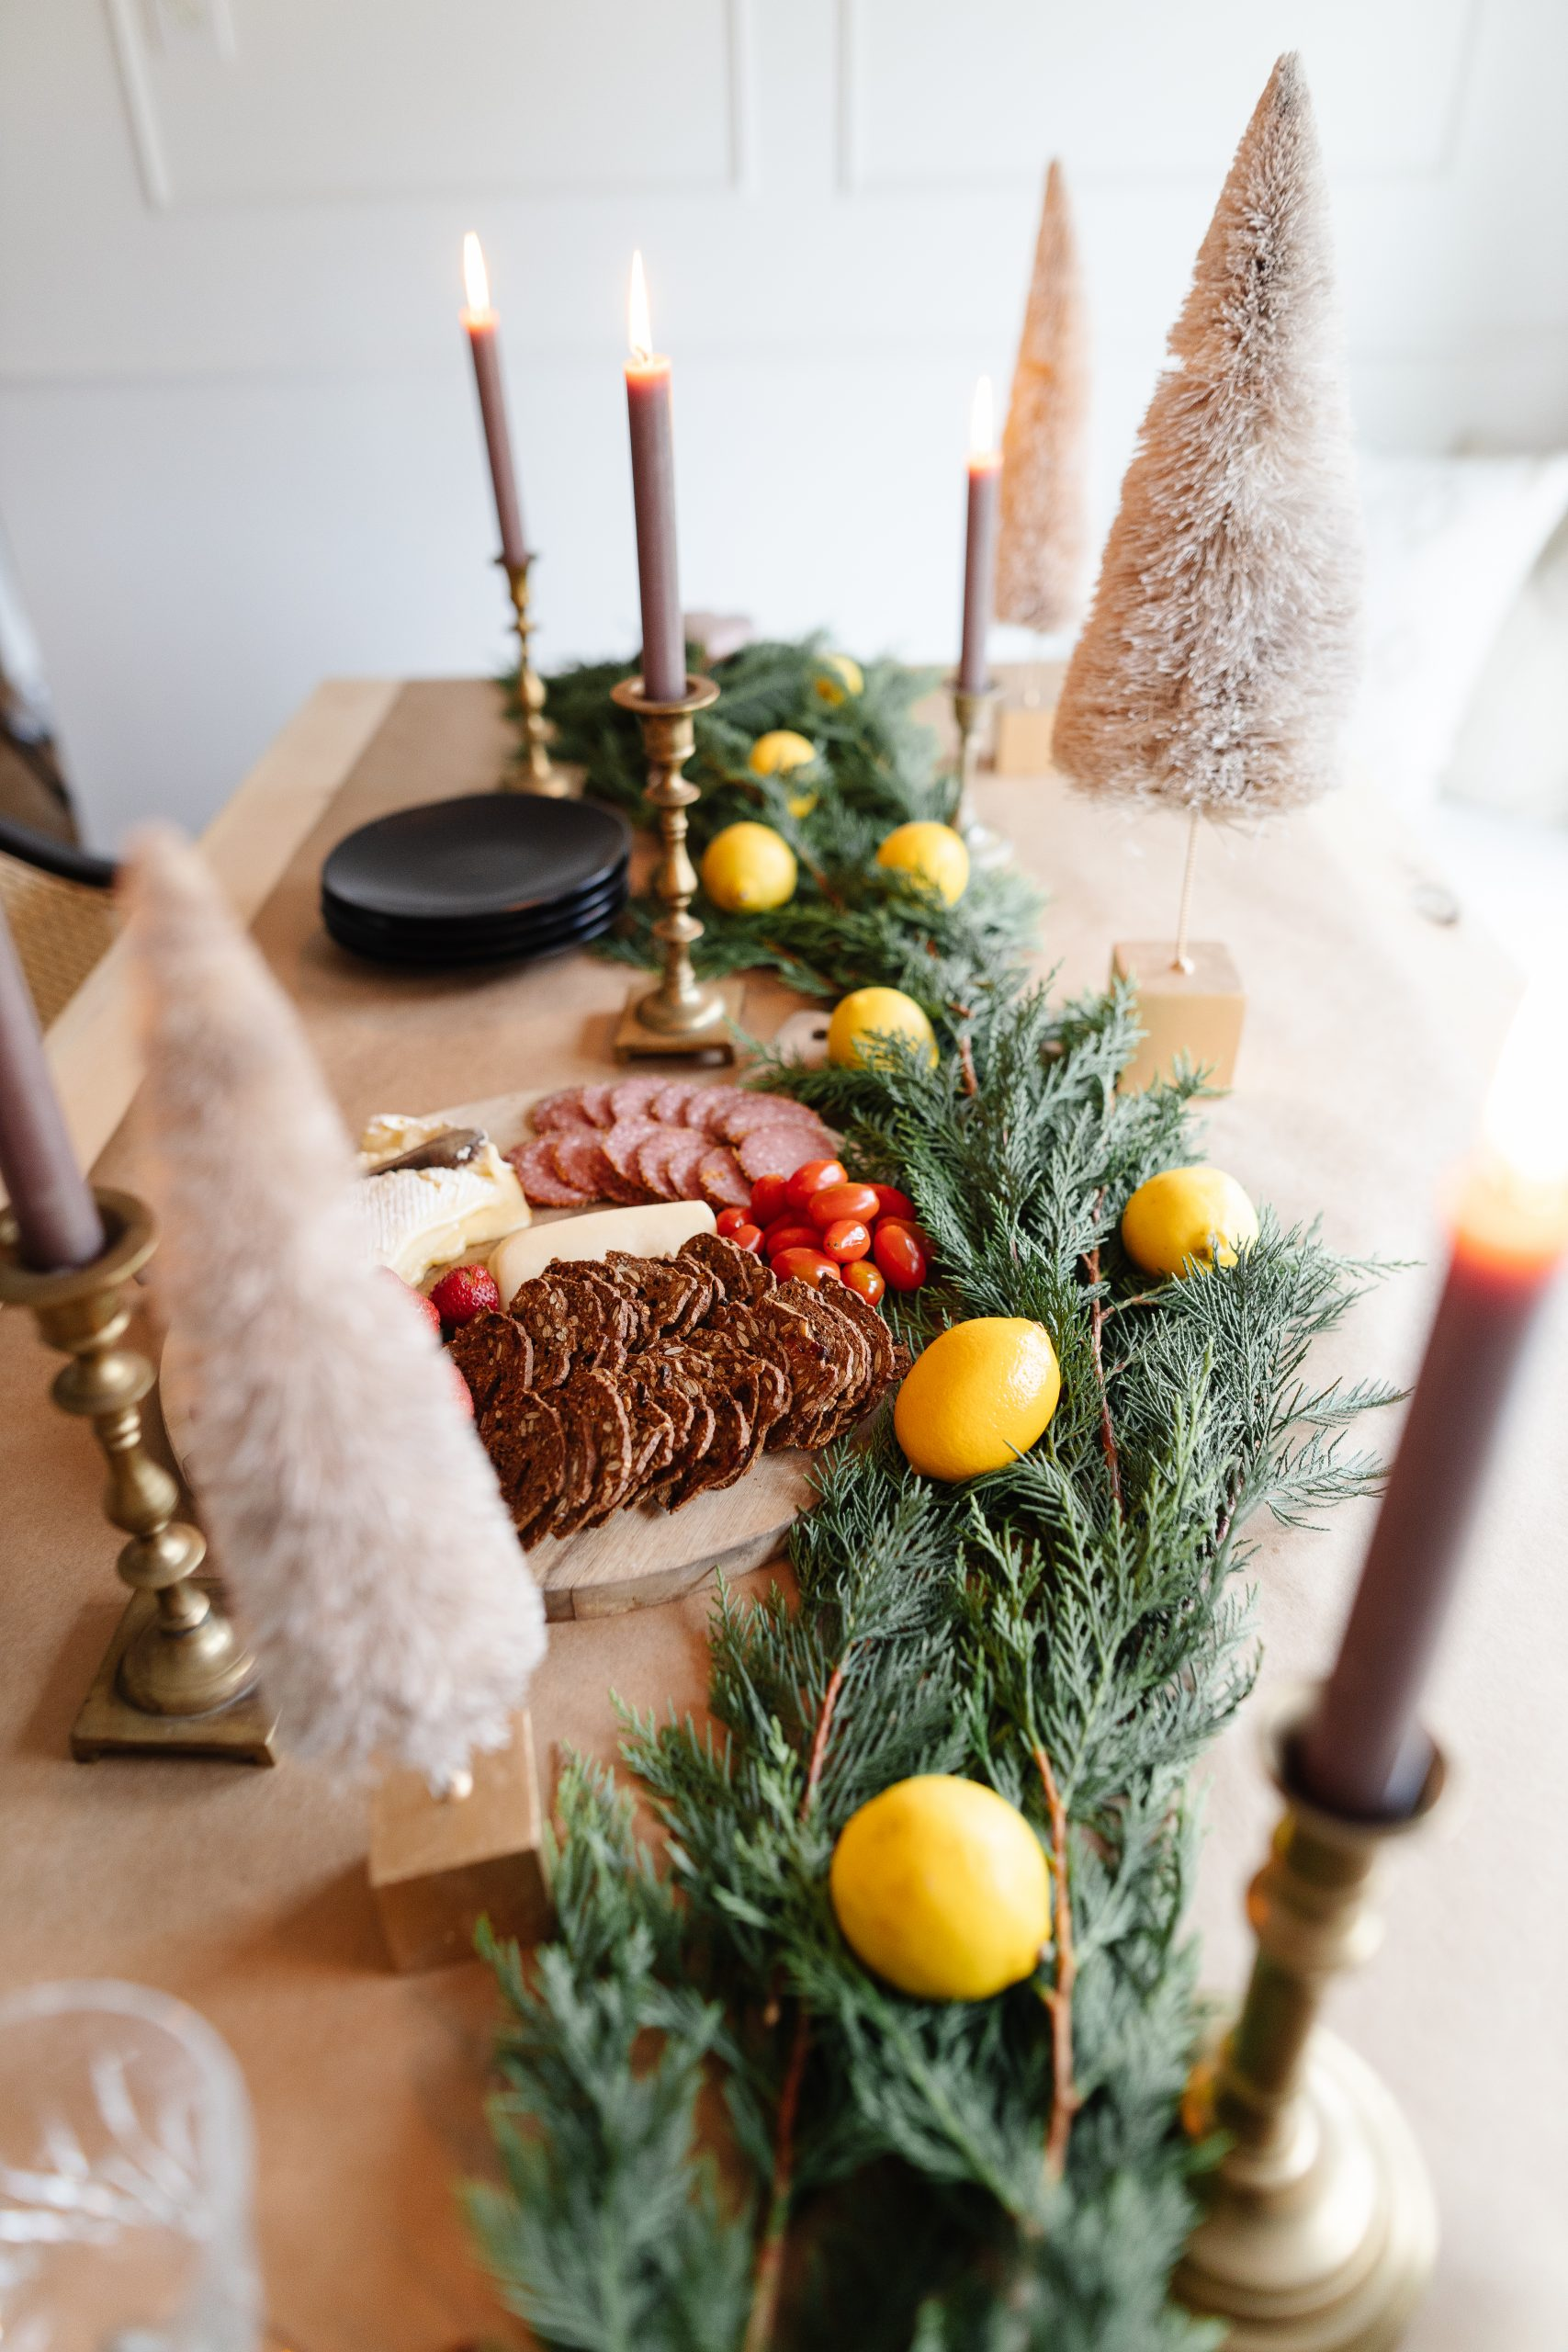 How to create a vintage Christmas tablescape. I used items we already had with vintage crystal glass, candlesticks and even an old quilt! I blended modern pieces with traditional pieces to give our Christmas dining room a very cozy feel. I used taupe candles with brass candlesticks to make the space feel inviting. Holiday decorating doesn't have to be uniform - make it fun!